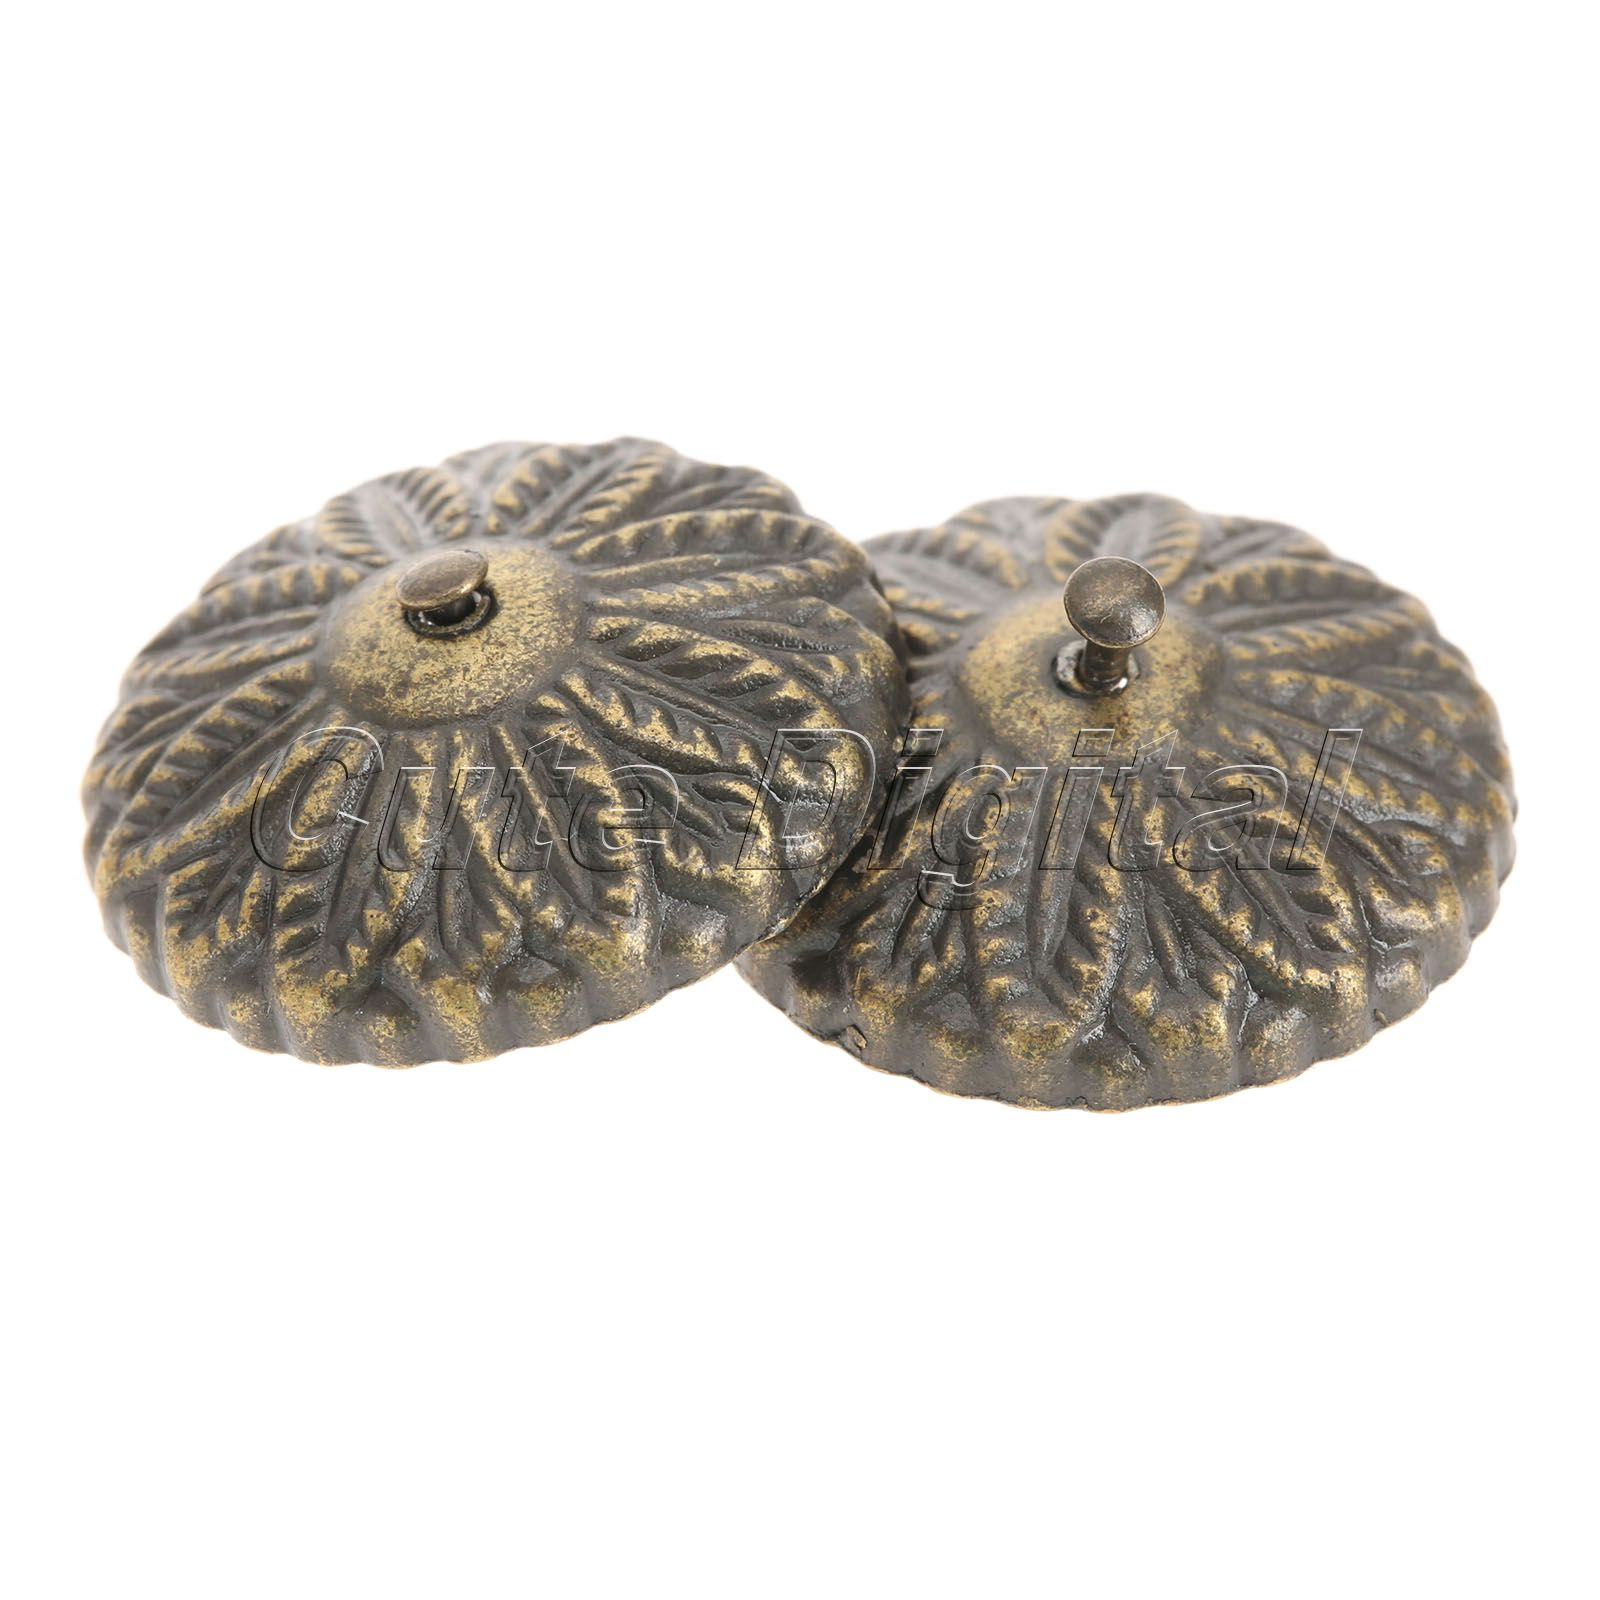 50Pcs 22mm Antique Bronze Carved Drum Nails Decorative Furniture Upholstery Nails Tack Studs Wooden Jewelry Box Bag Foot Tacks